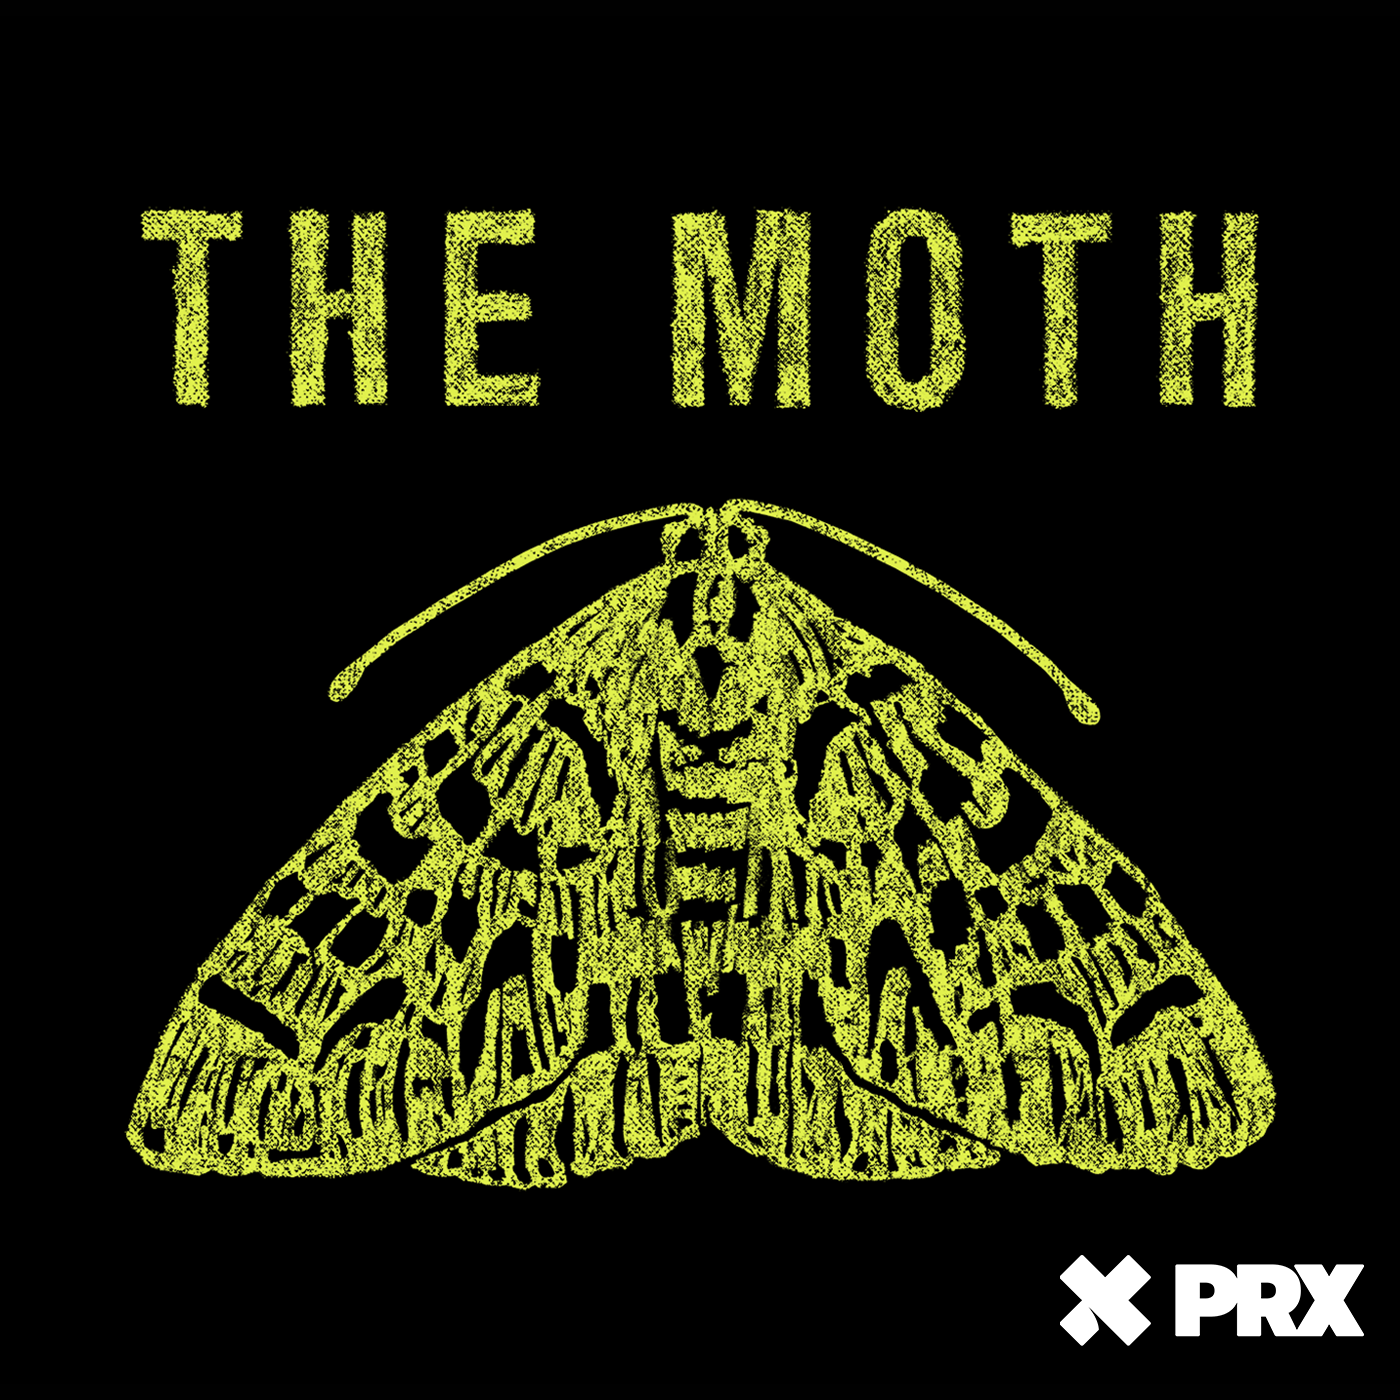 The Moth Radio Hour: Not What They Seem